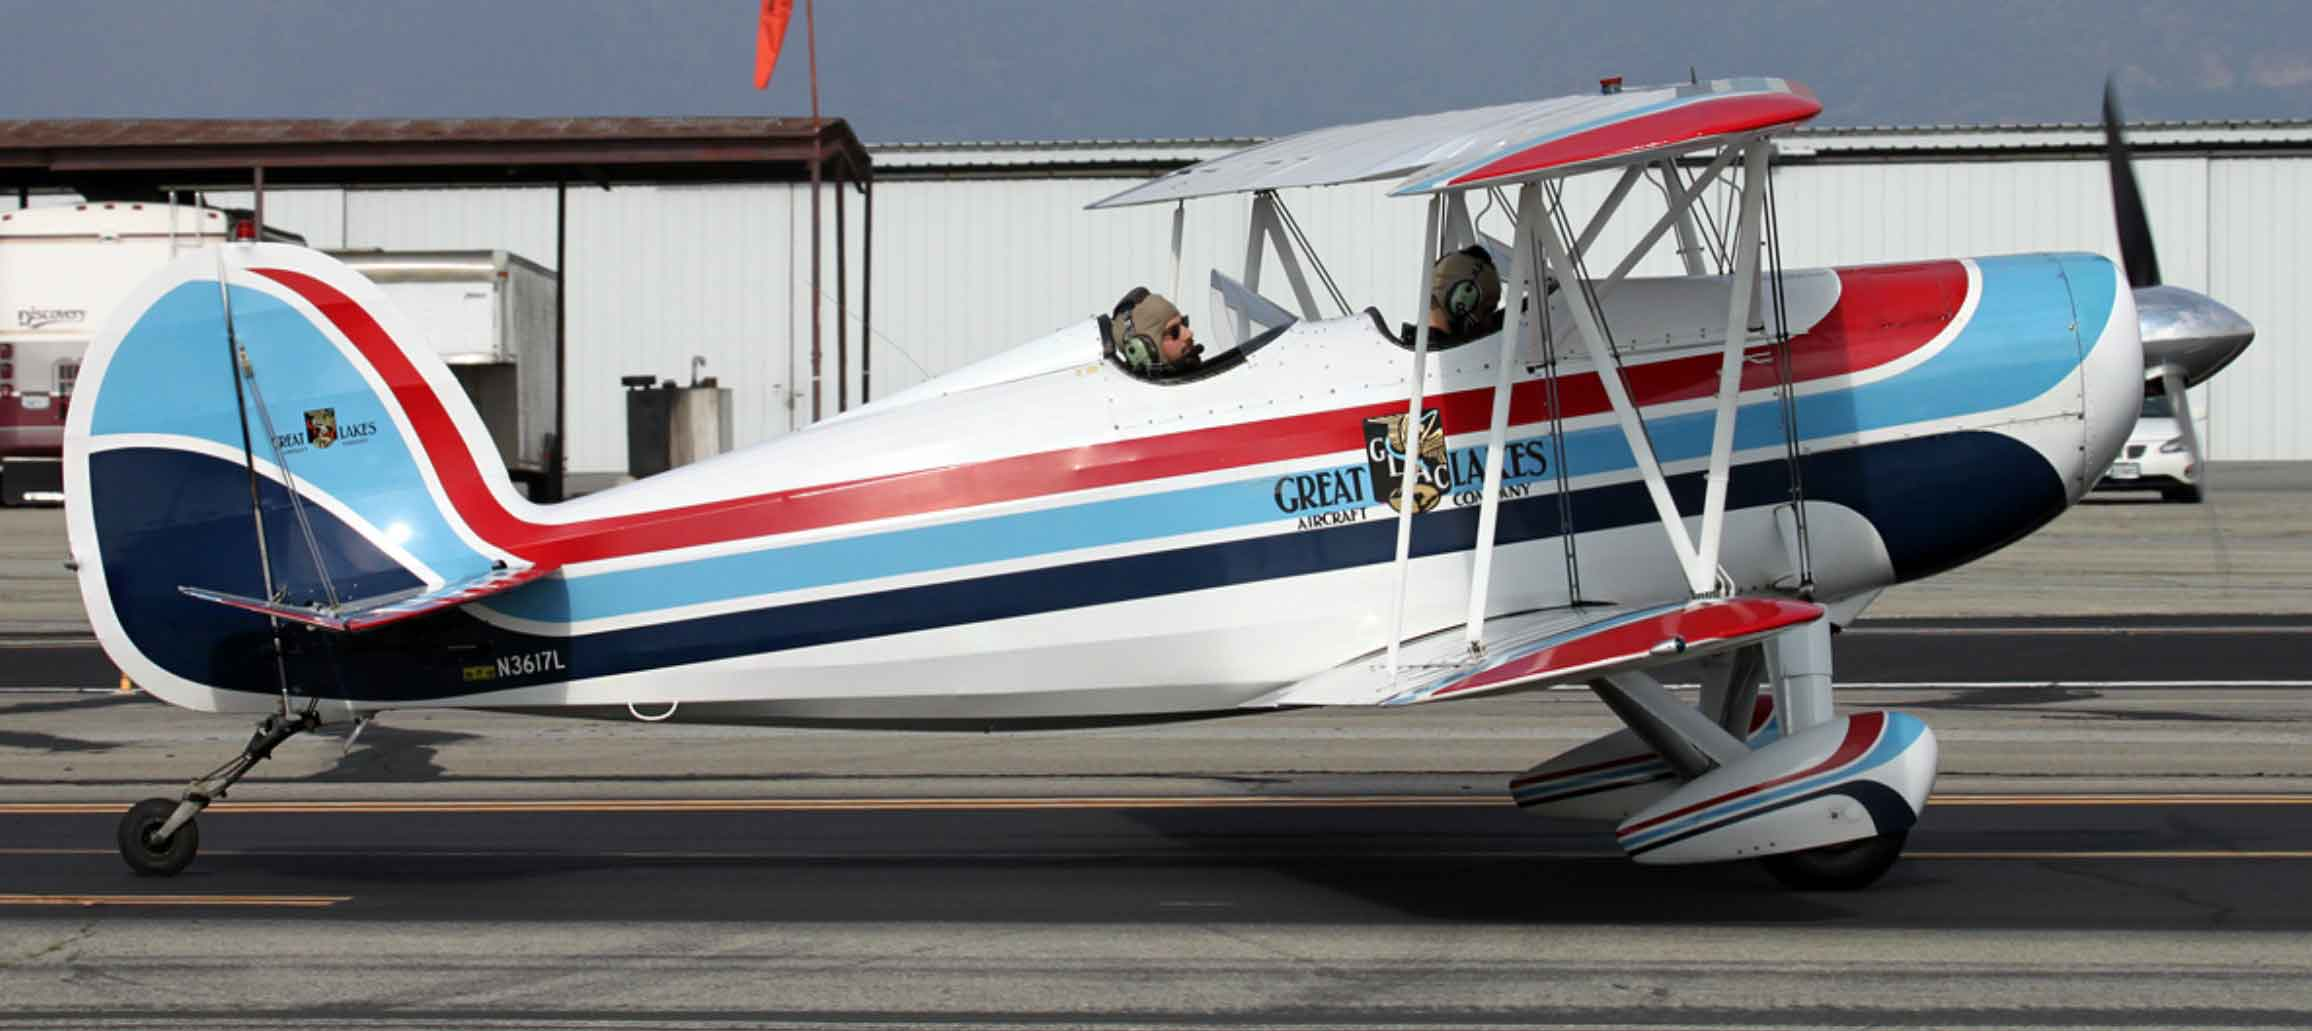 Tail Wheel fun: this is probably the easiest tail wheel aircraft you can fly!